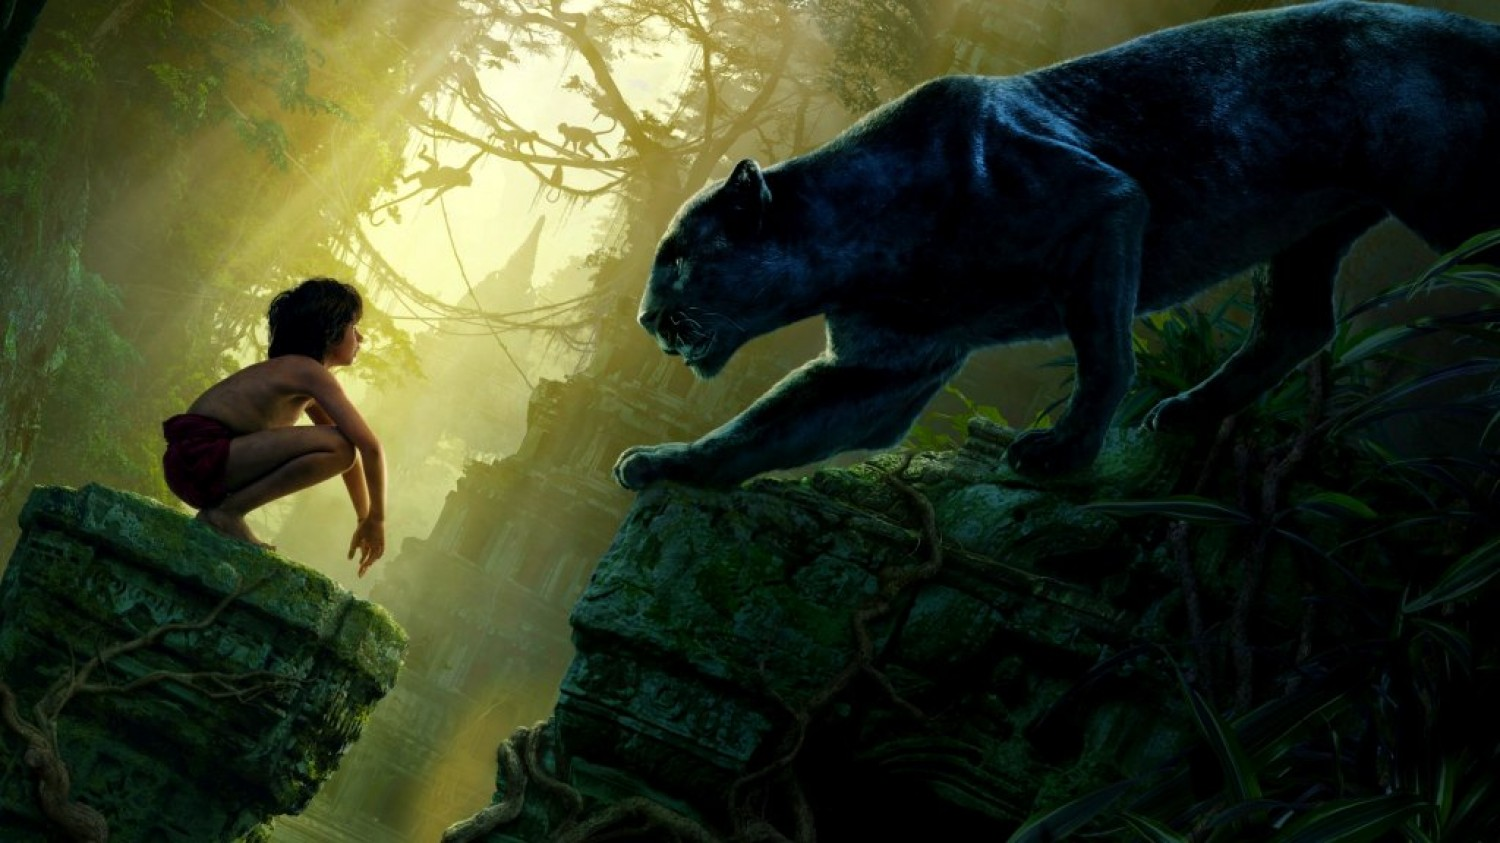 The Jungle Book (2016) Jon Favreau - Movie Review